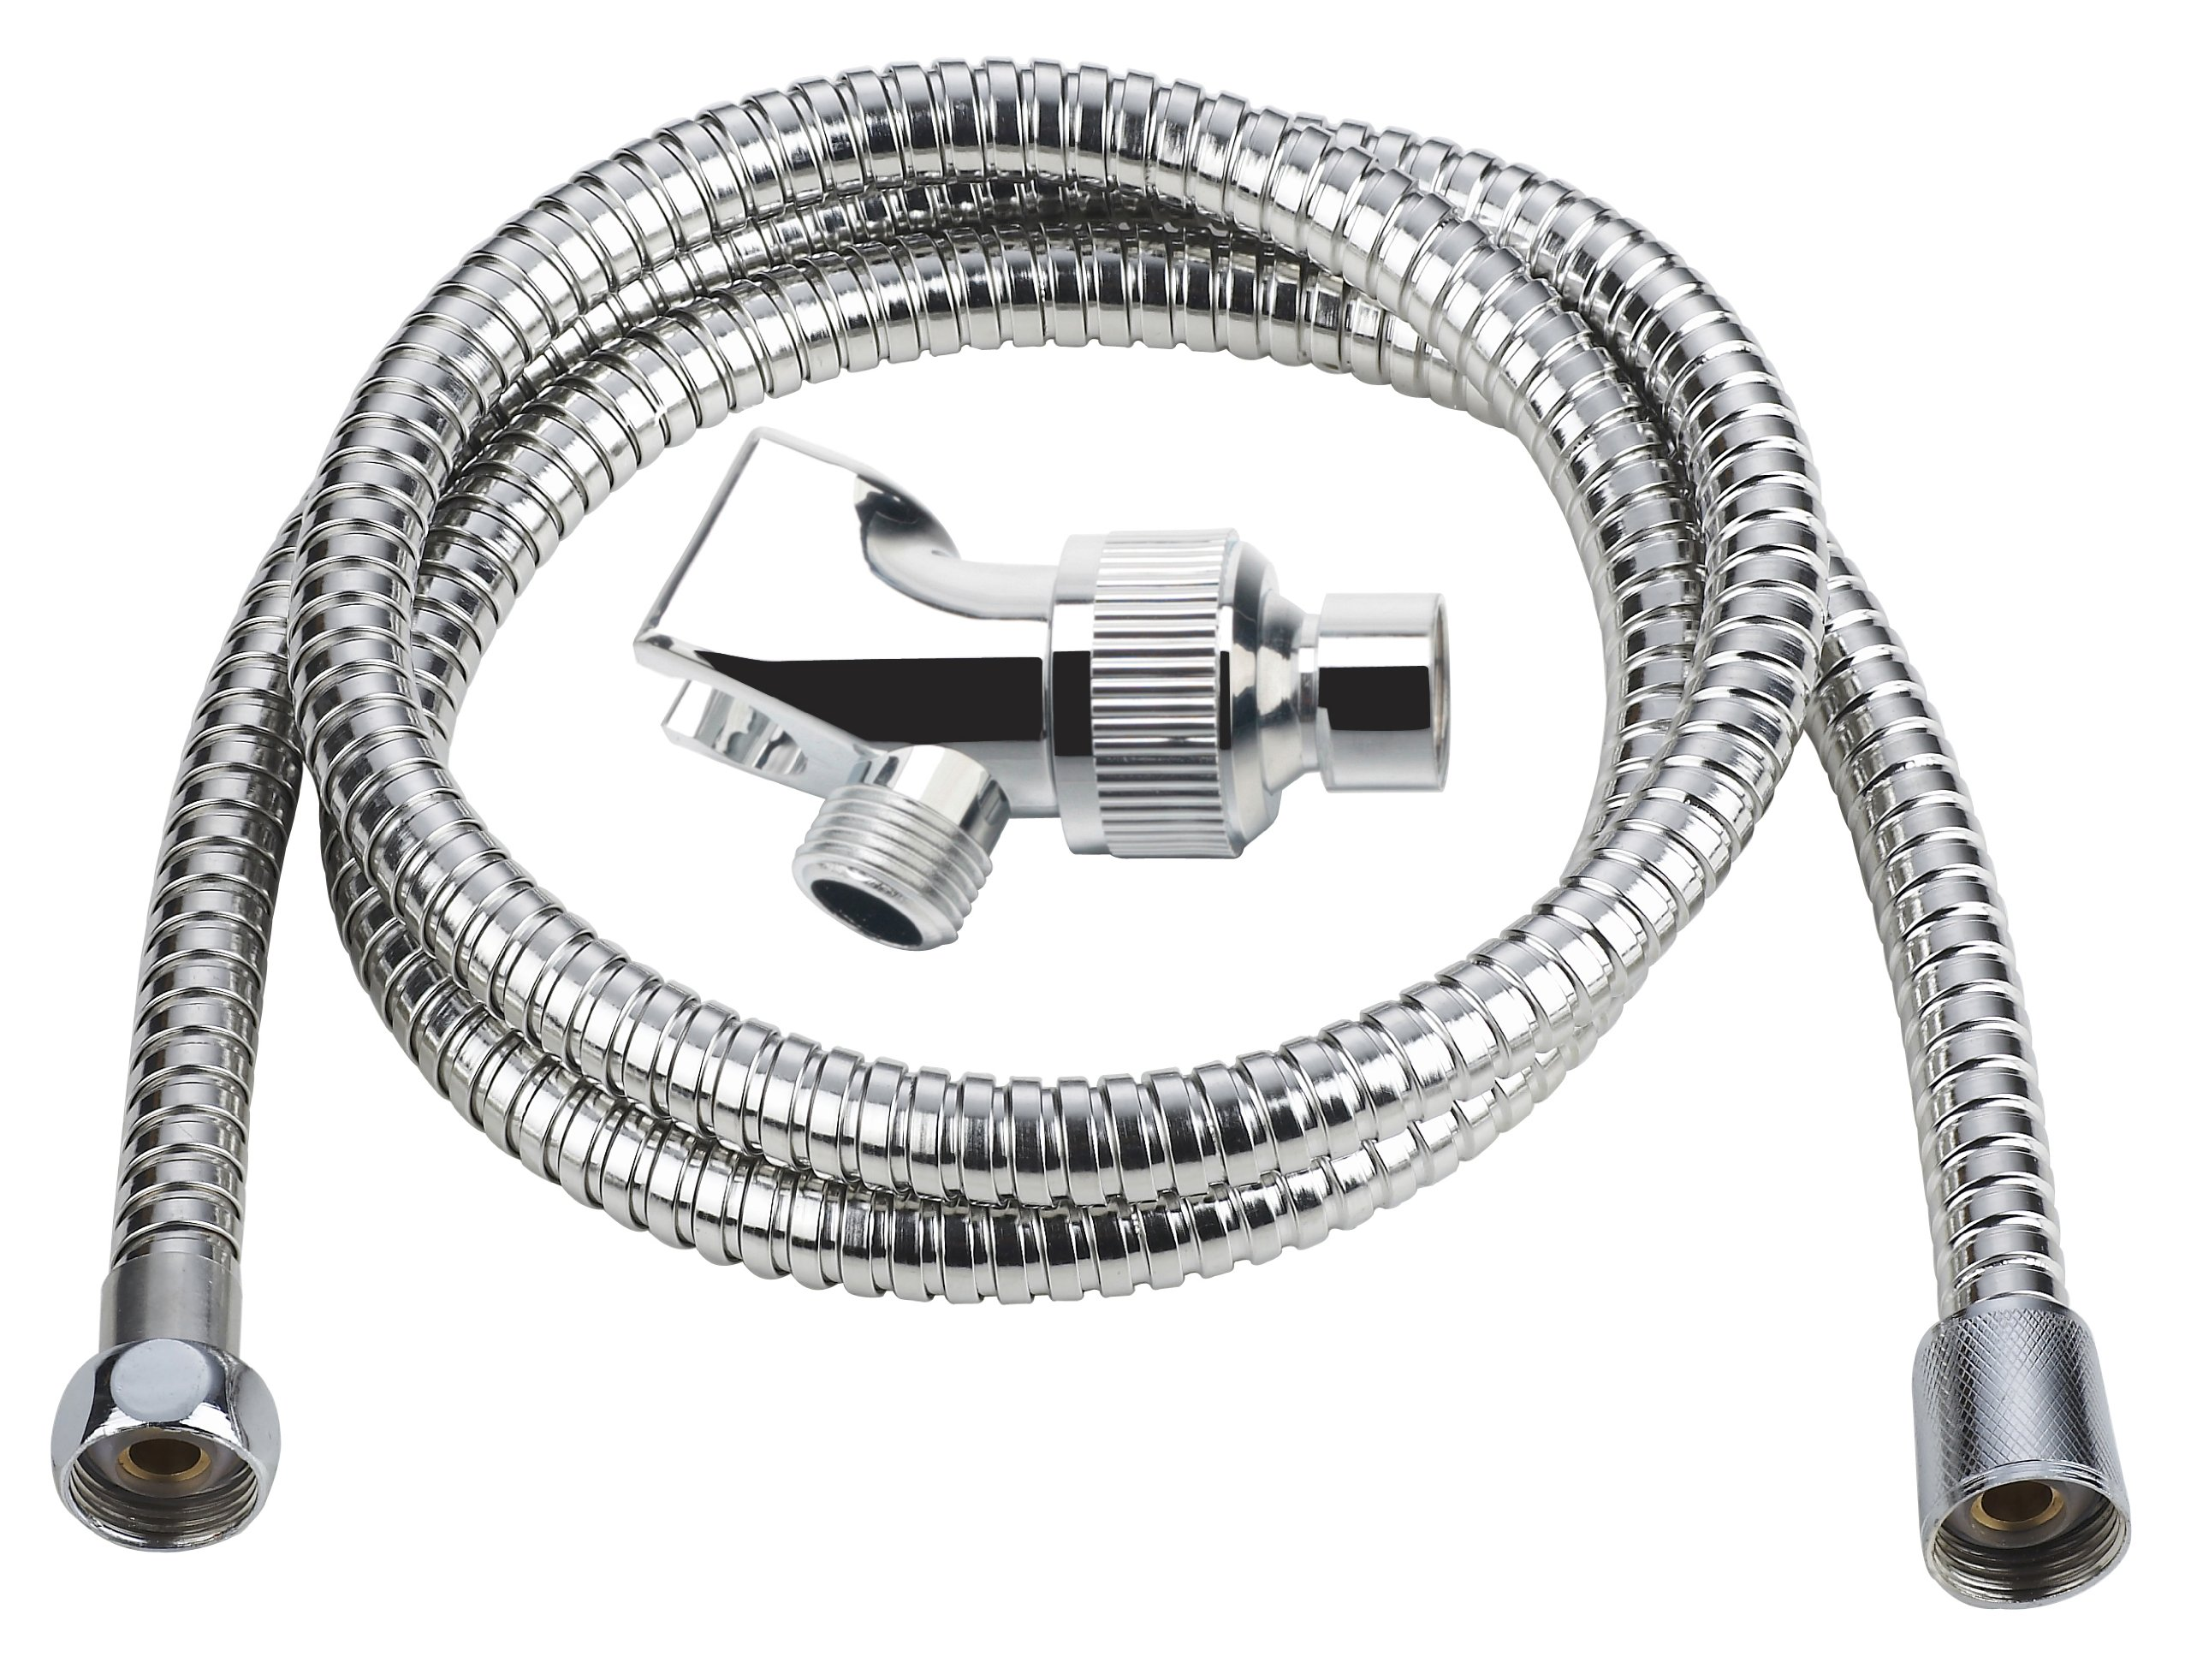 Hand Held Shower Hose Kit Stainless Steel with ABS Holder with Brass Joint: SHK